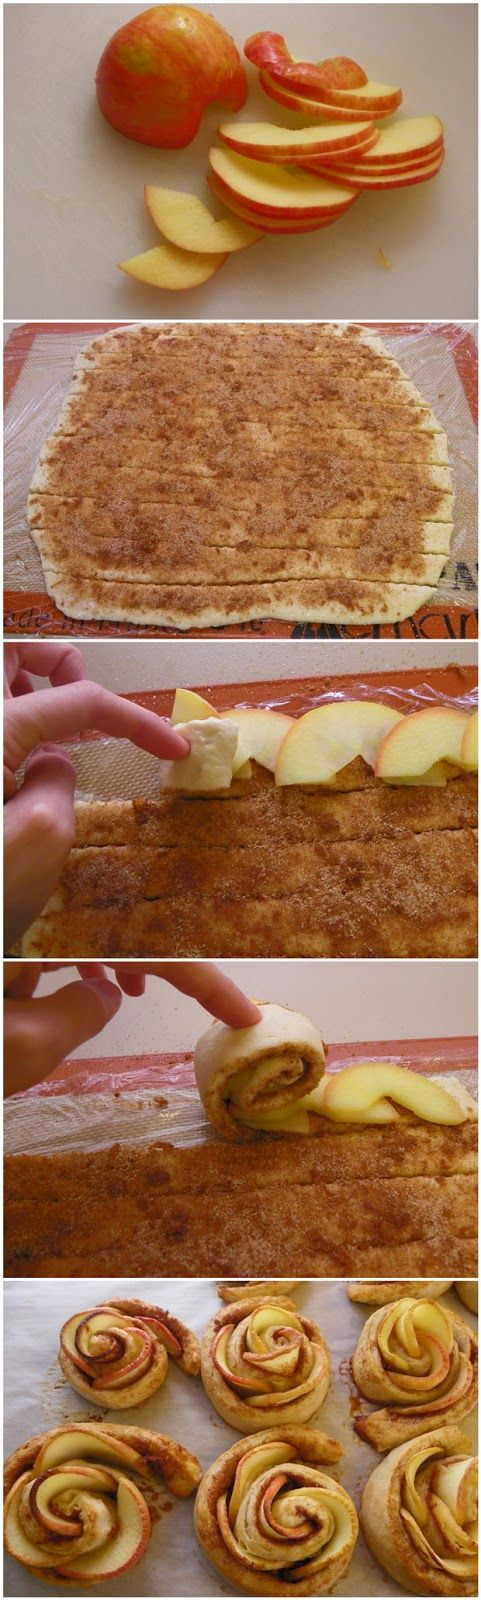 How to make Apple roses...